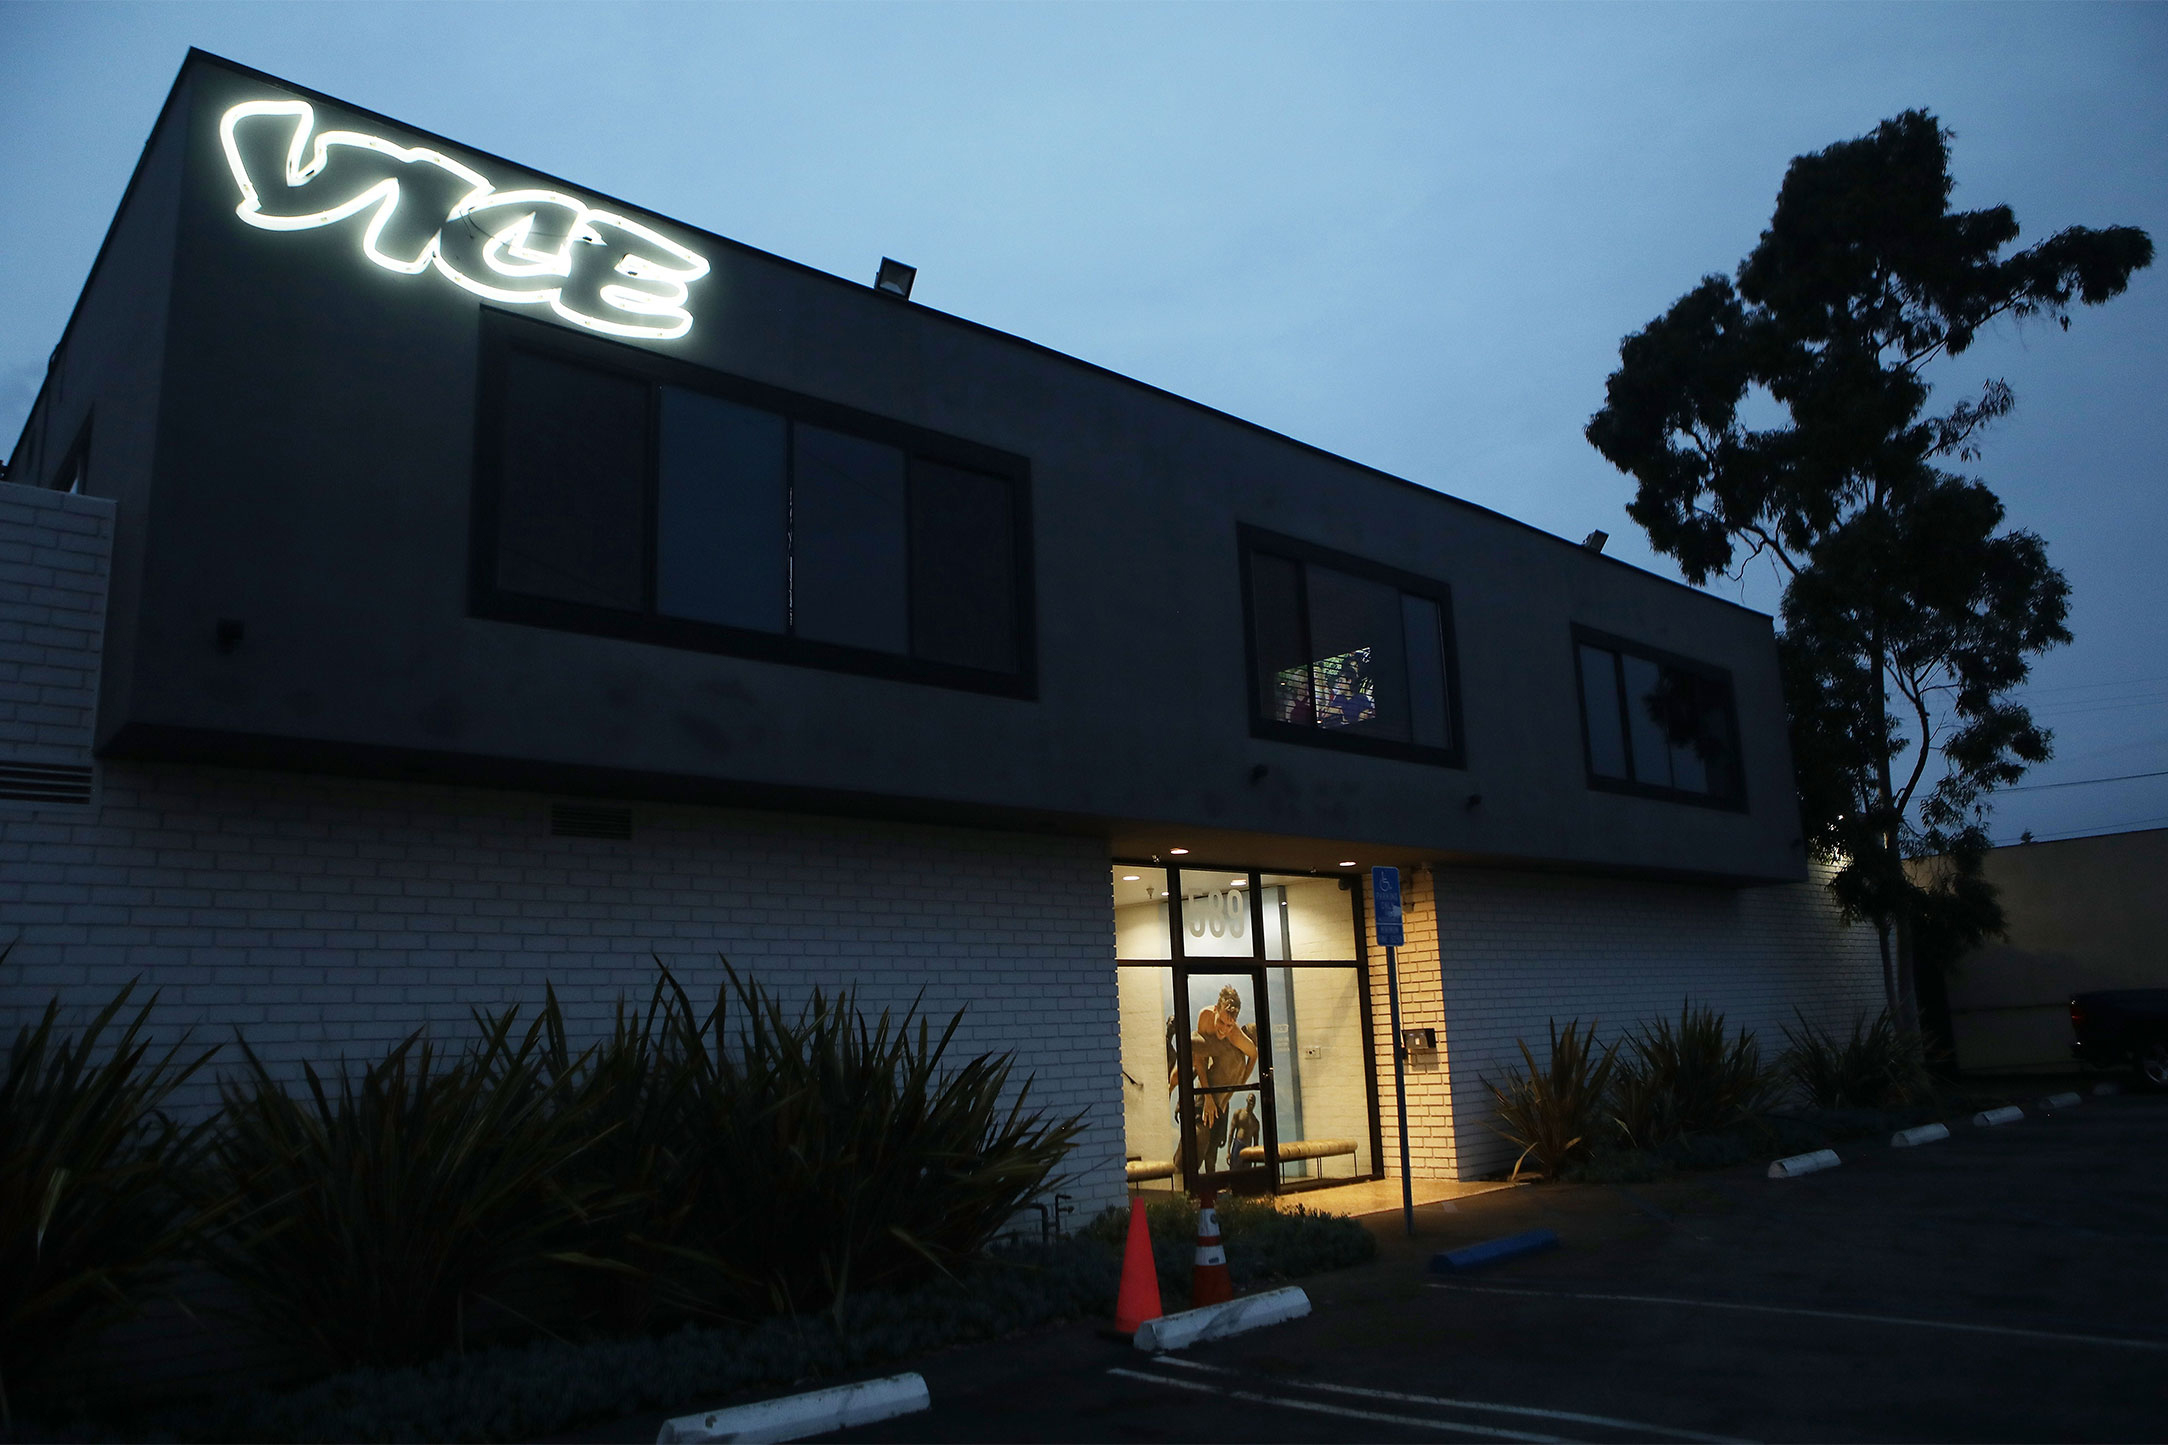 Vice Media to acquire Refinery29 in drive for female audiences